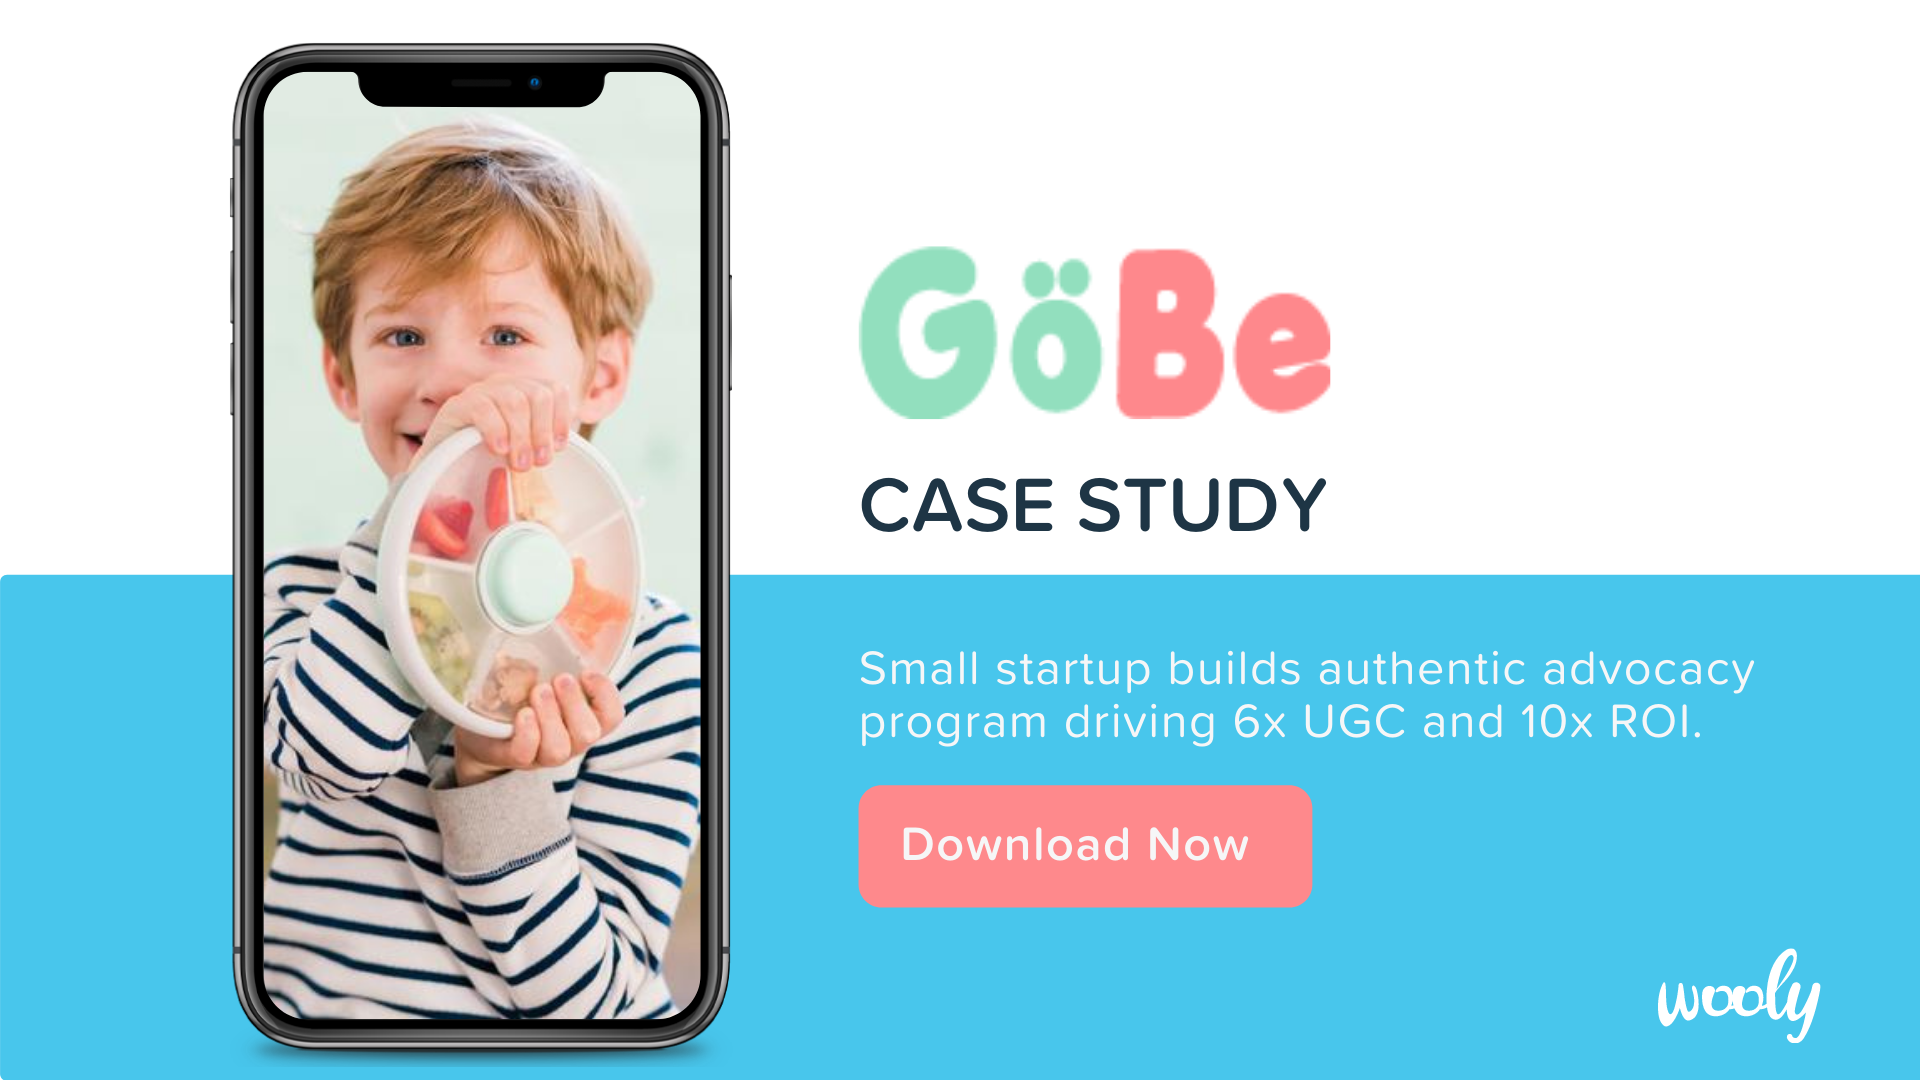 download the small startup case study